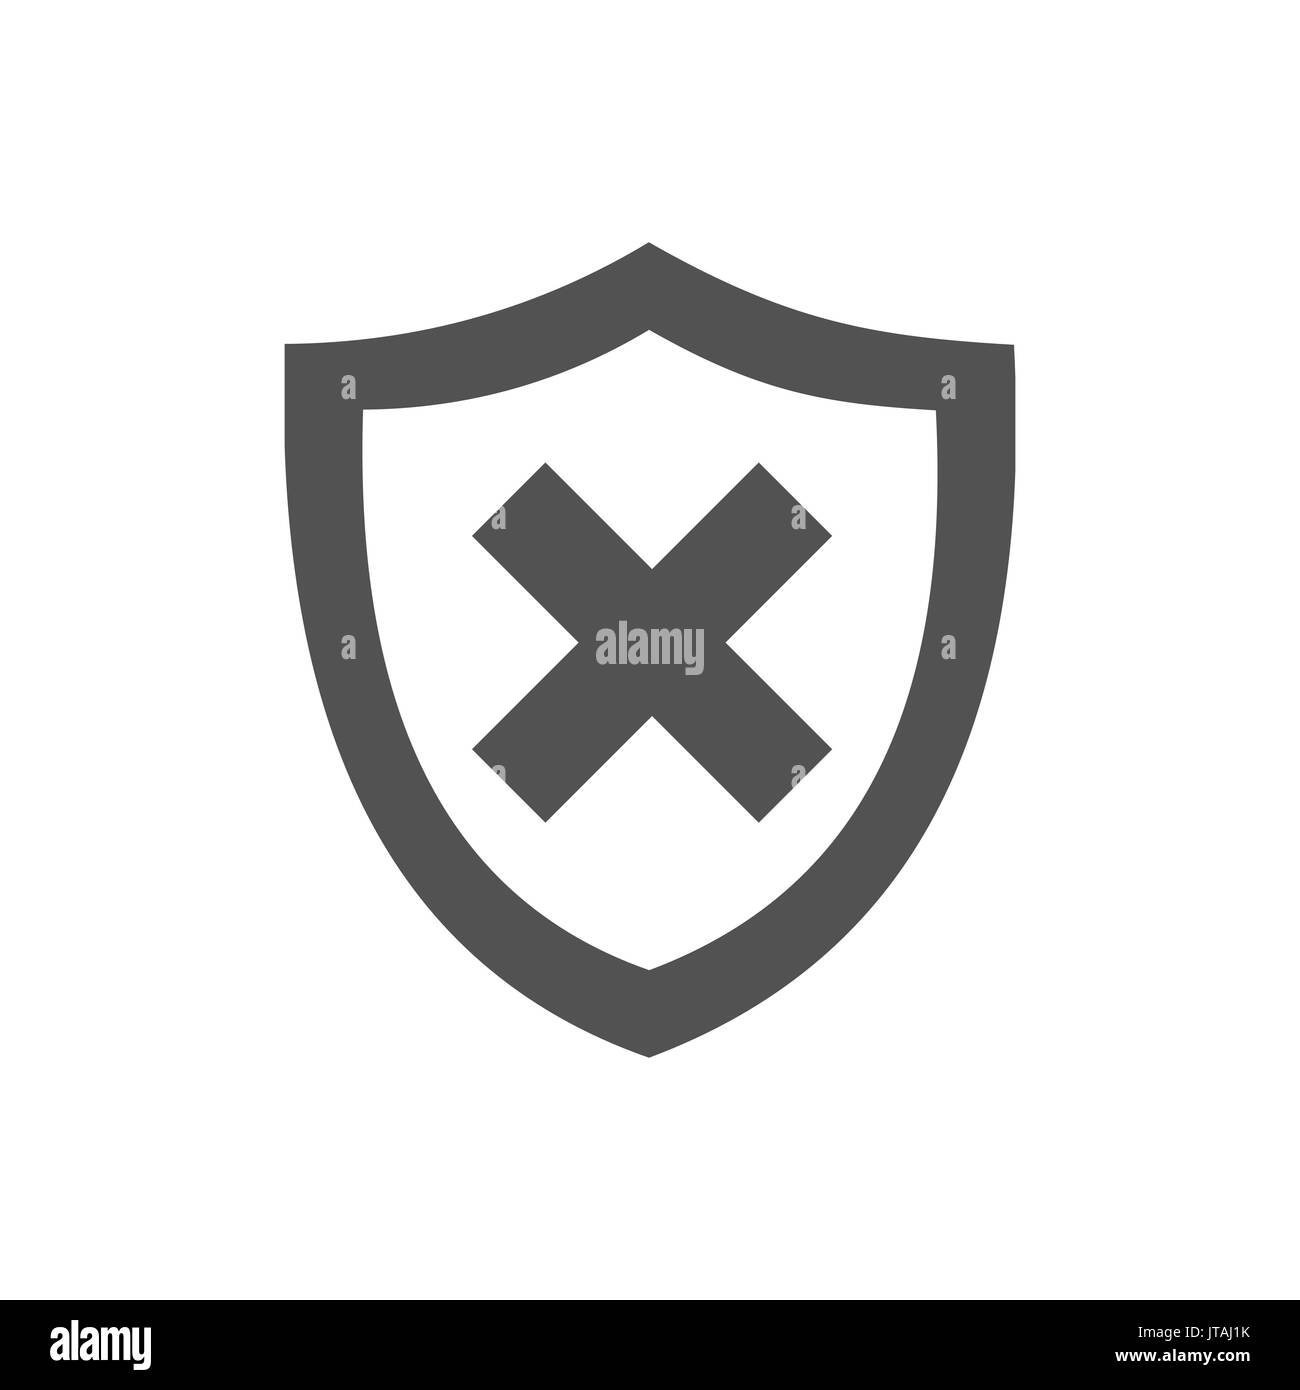 Unprotected shield icon on a white background - Stock Image